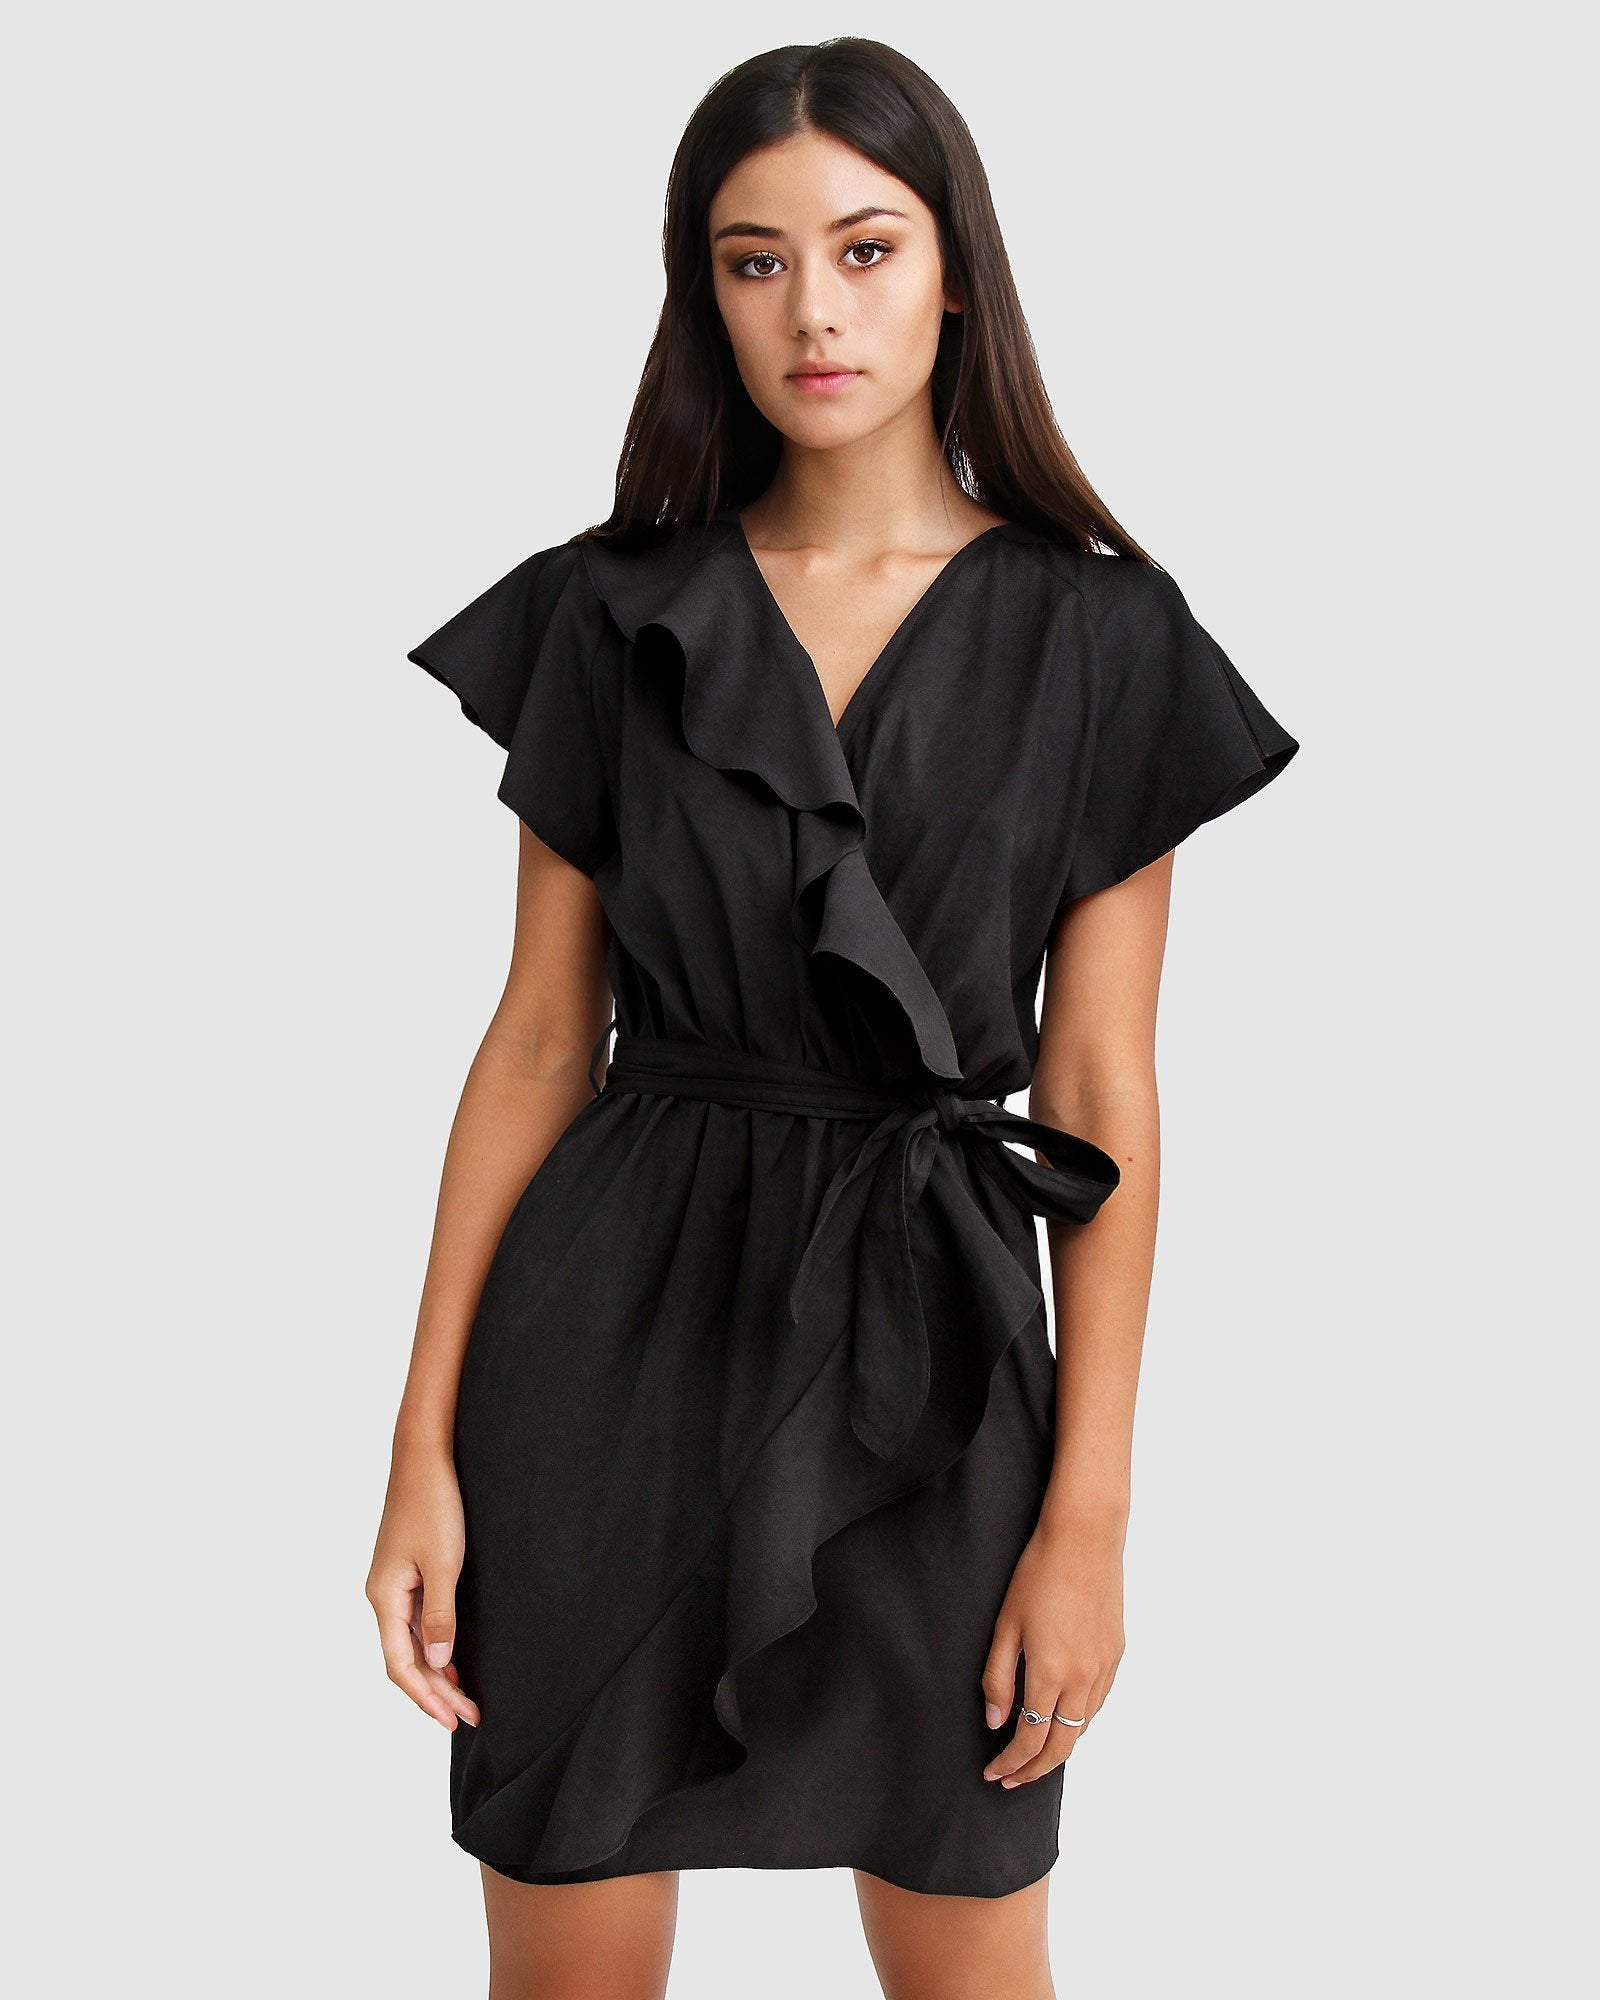 Best Selfie Ruffle Dress - Black